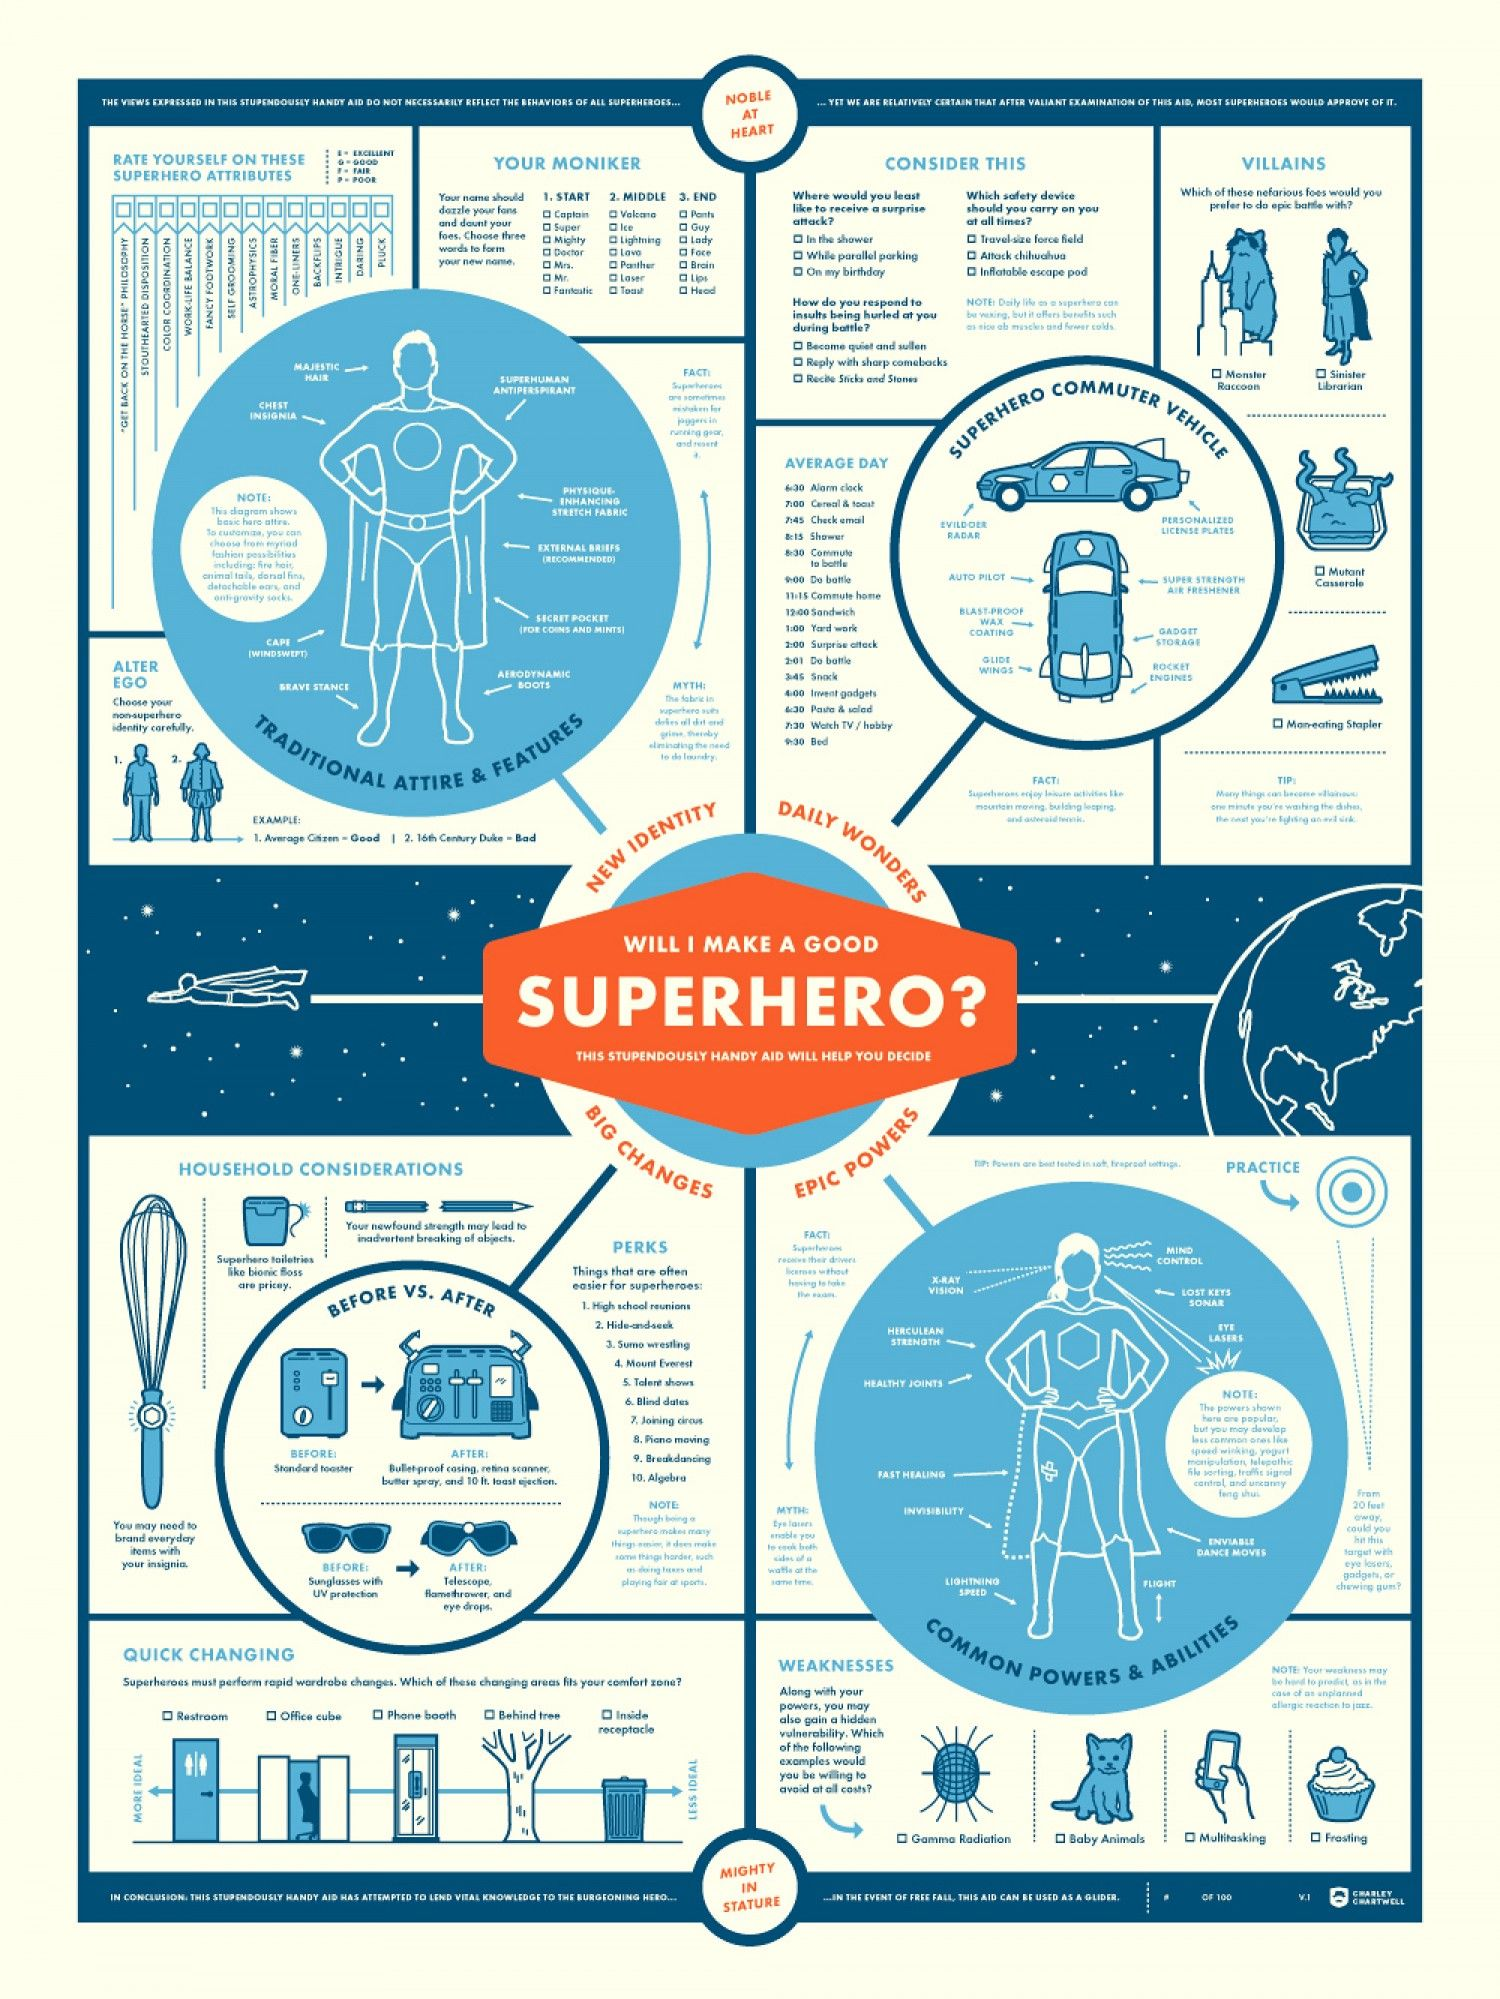 Will I Make a Good Superhero? poster Infographic | 2015 SRP ...